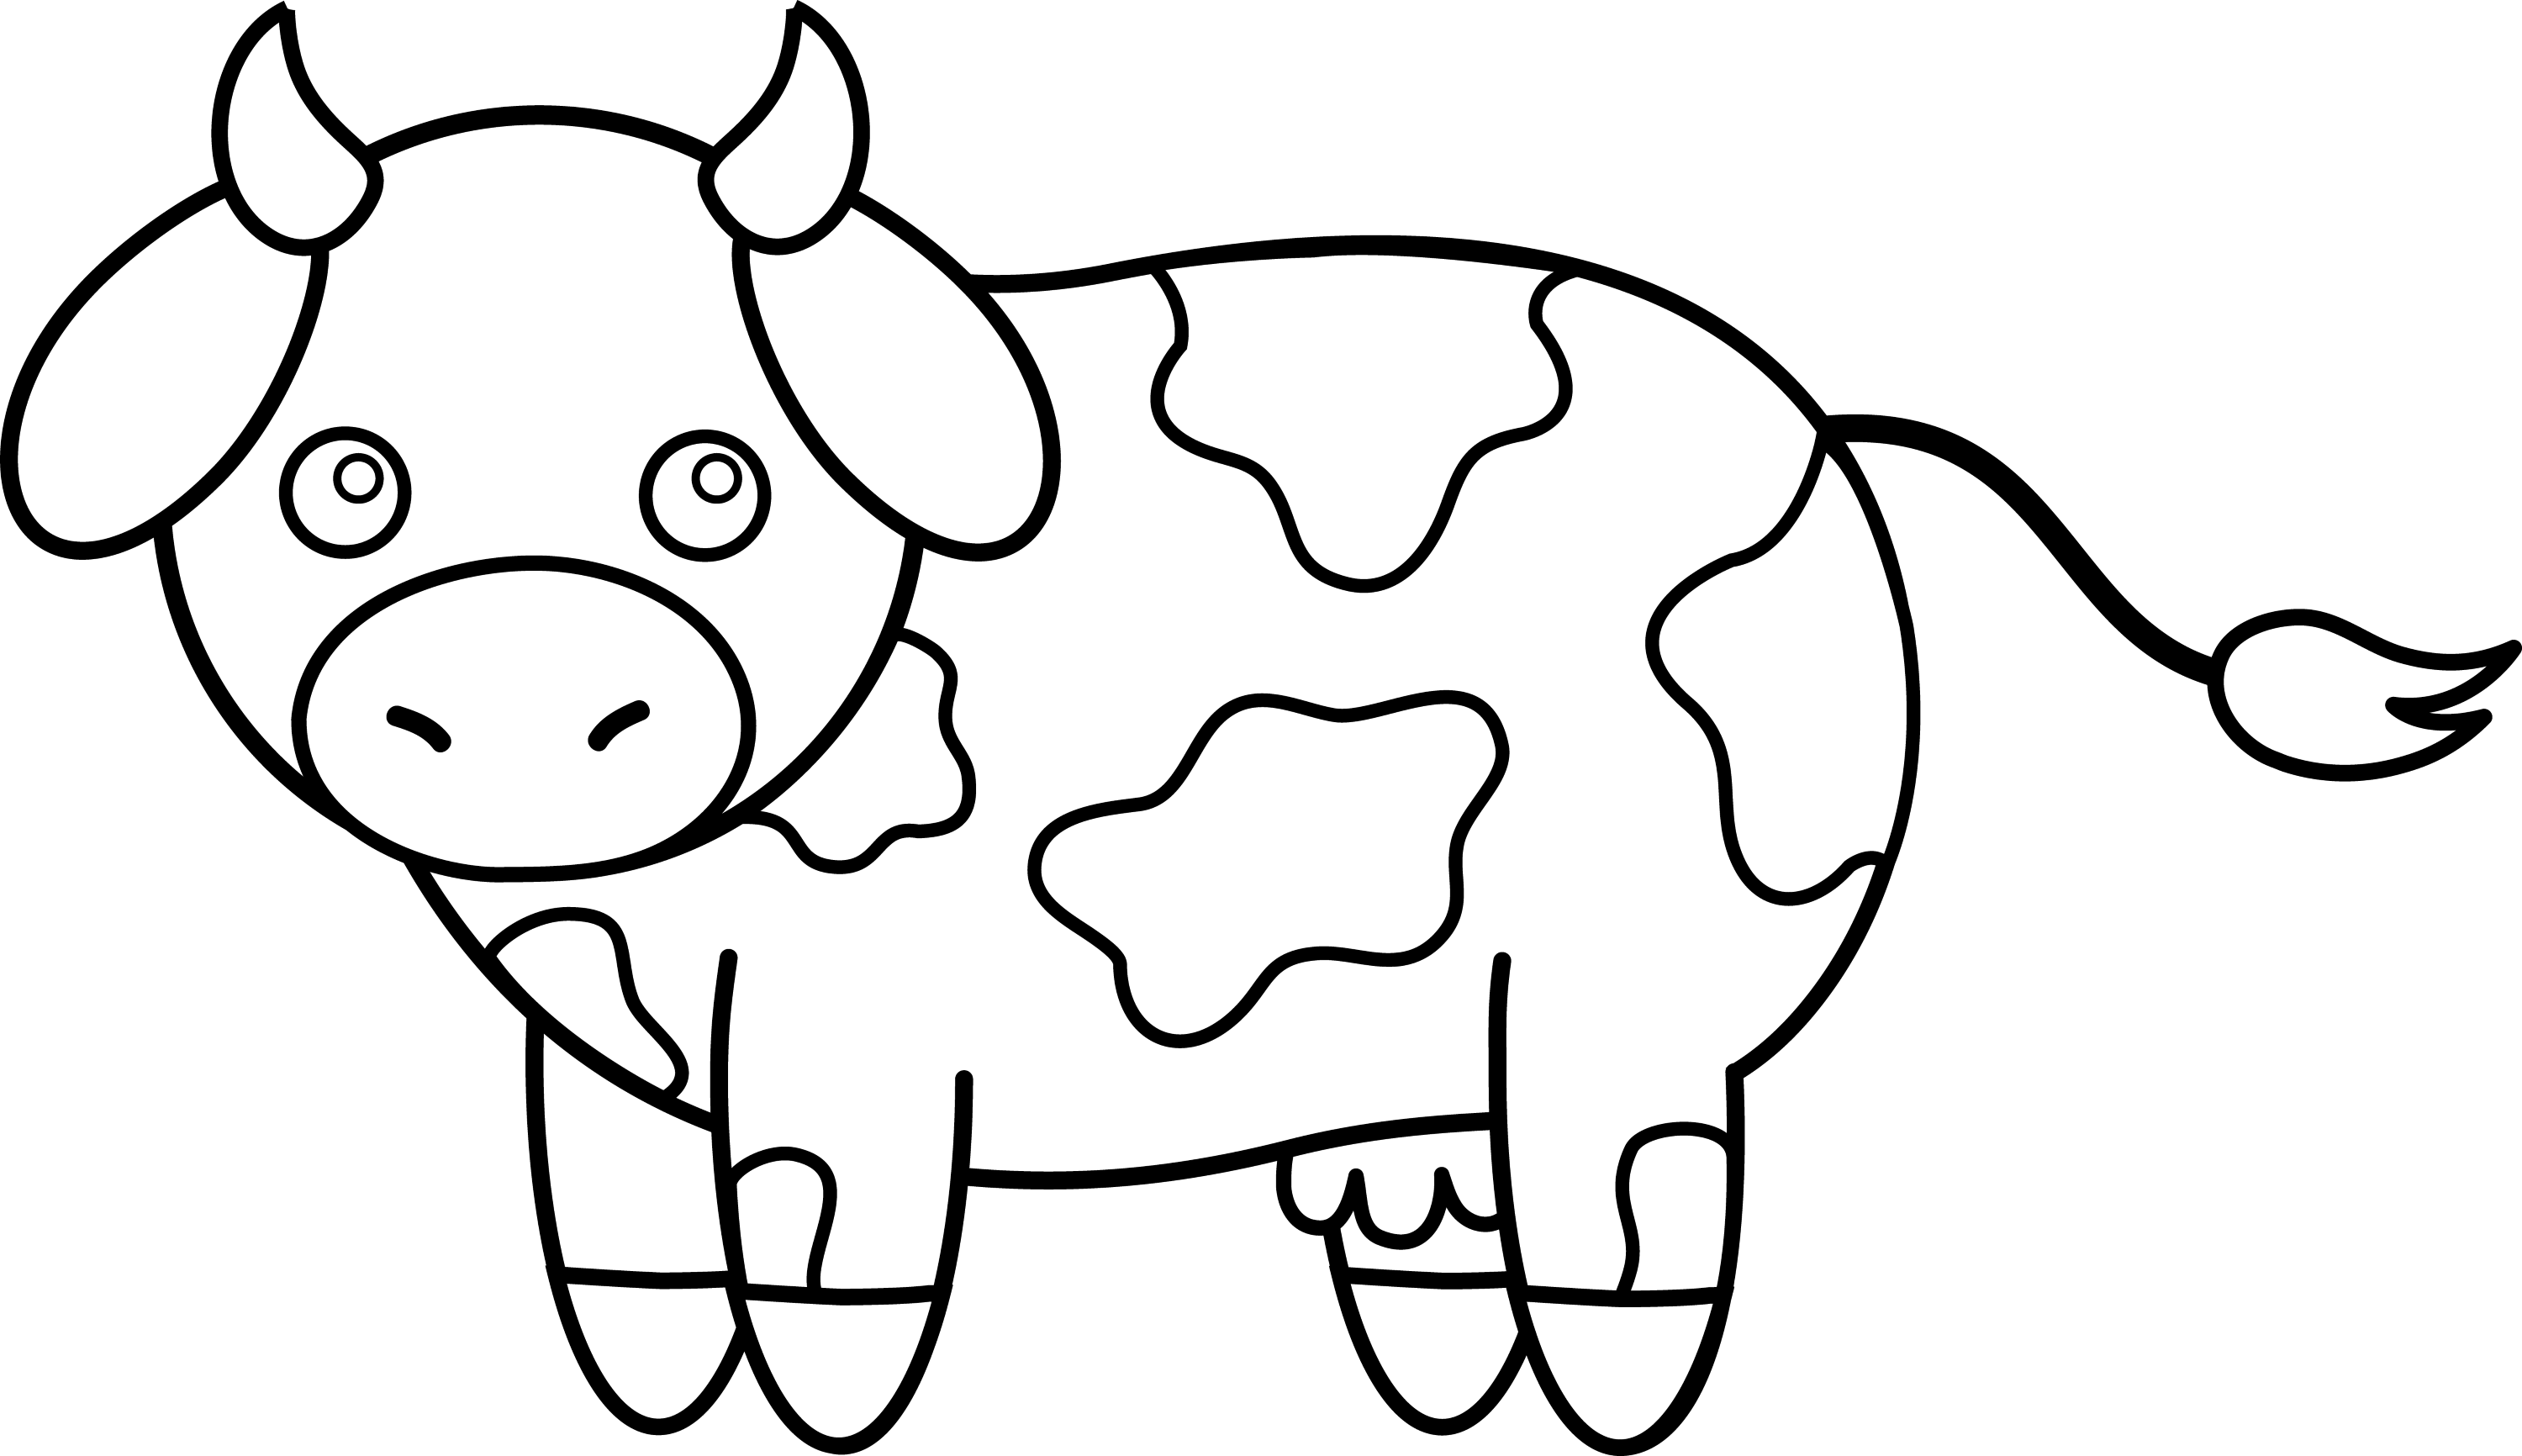 cow clipart simple - photo #36